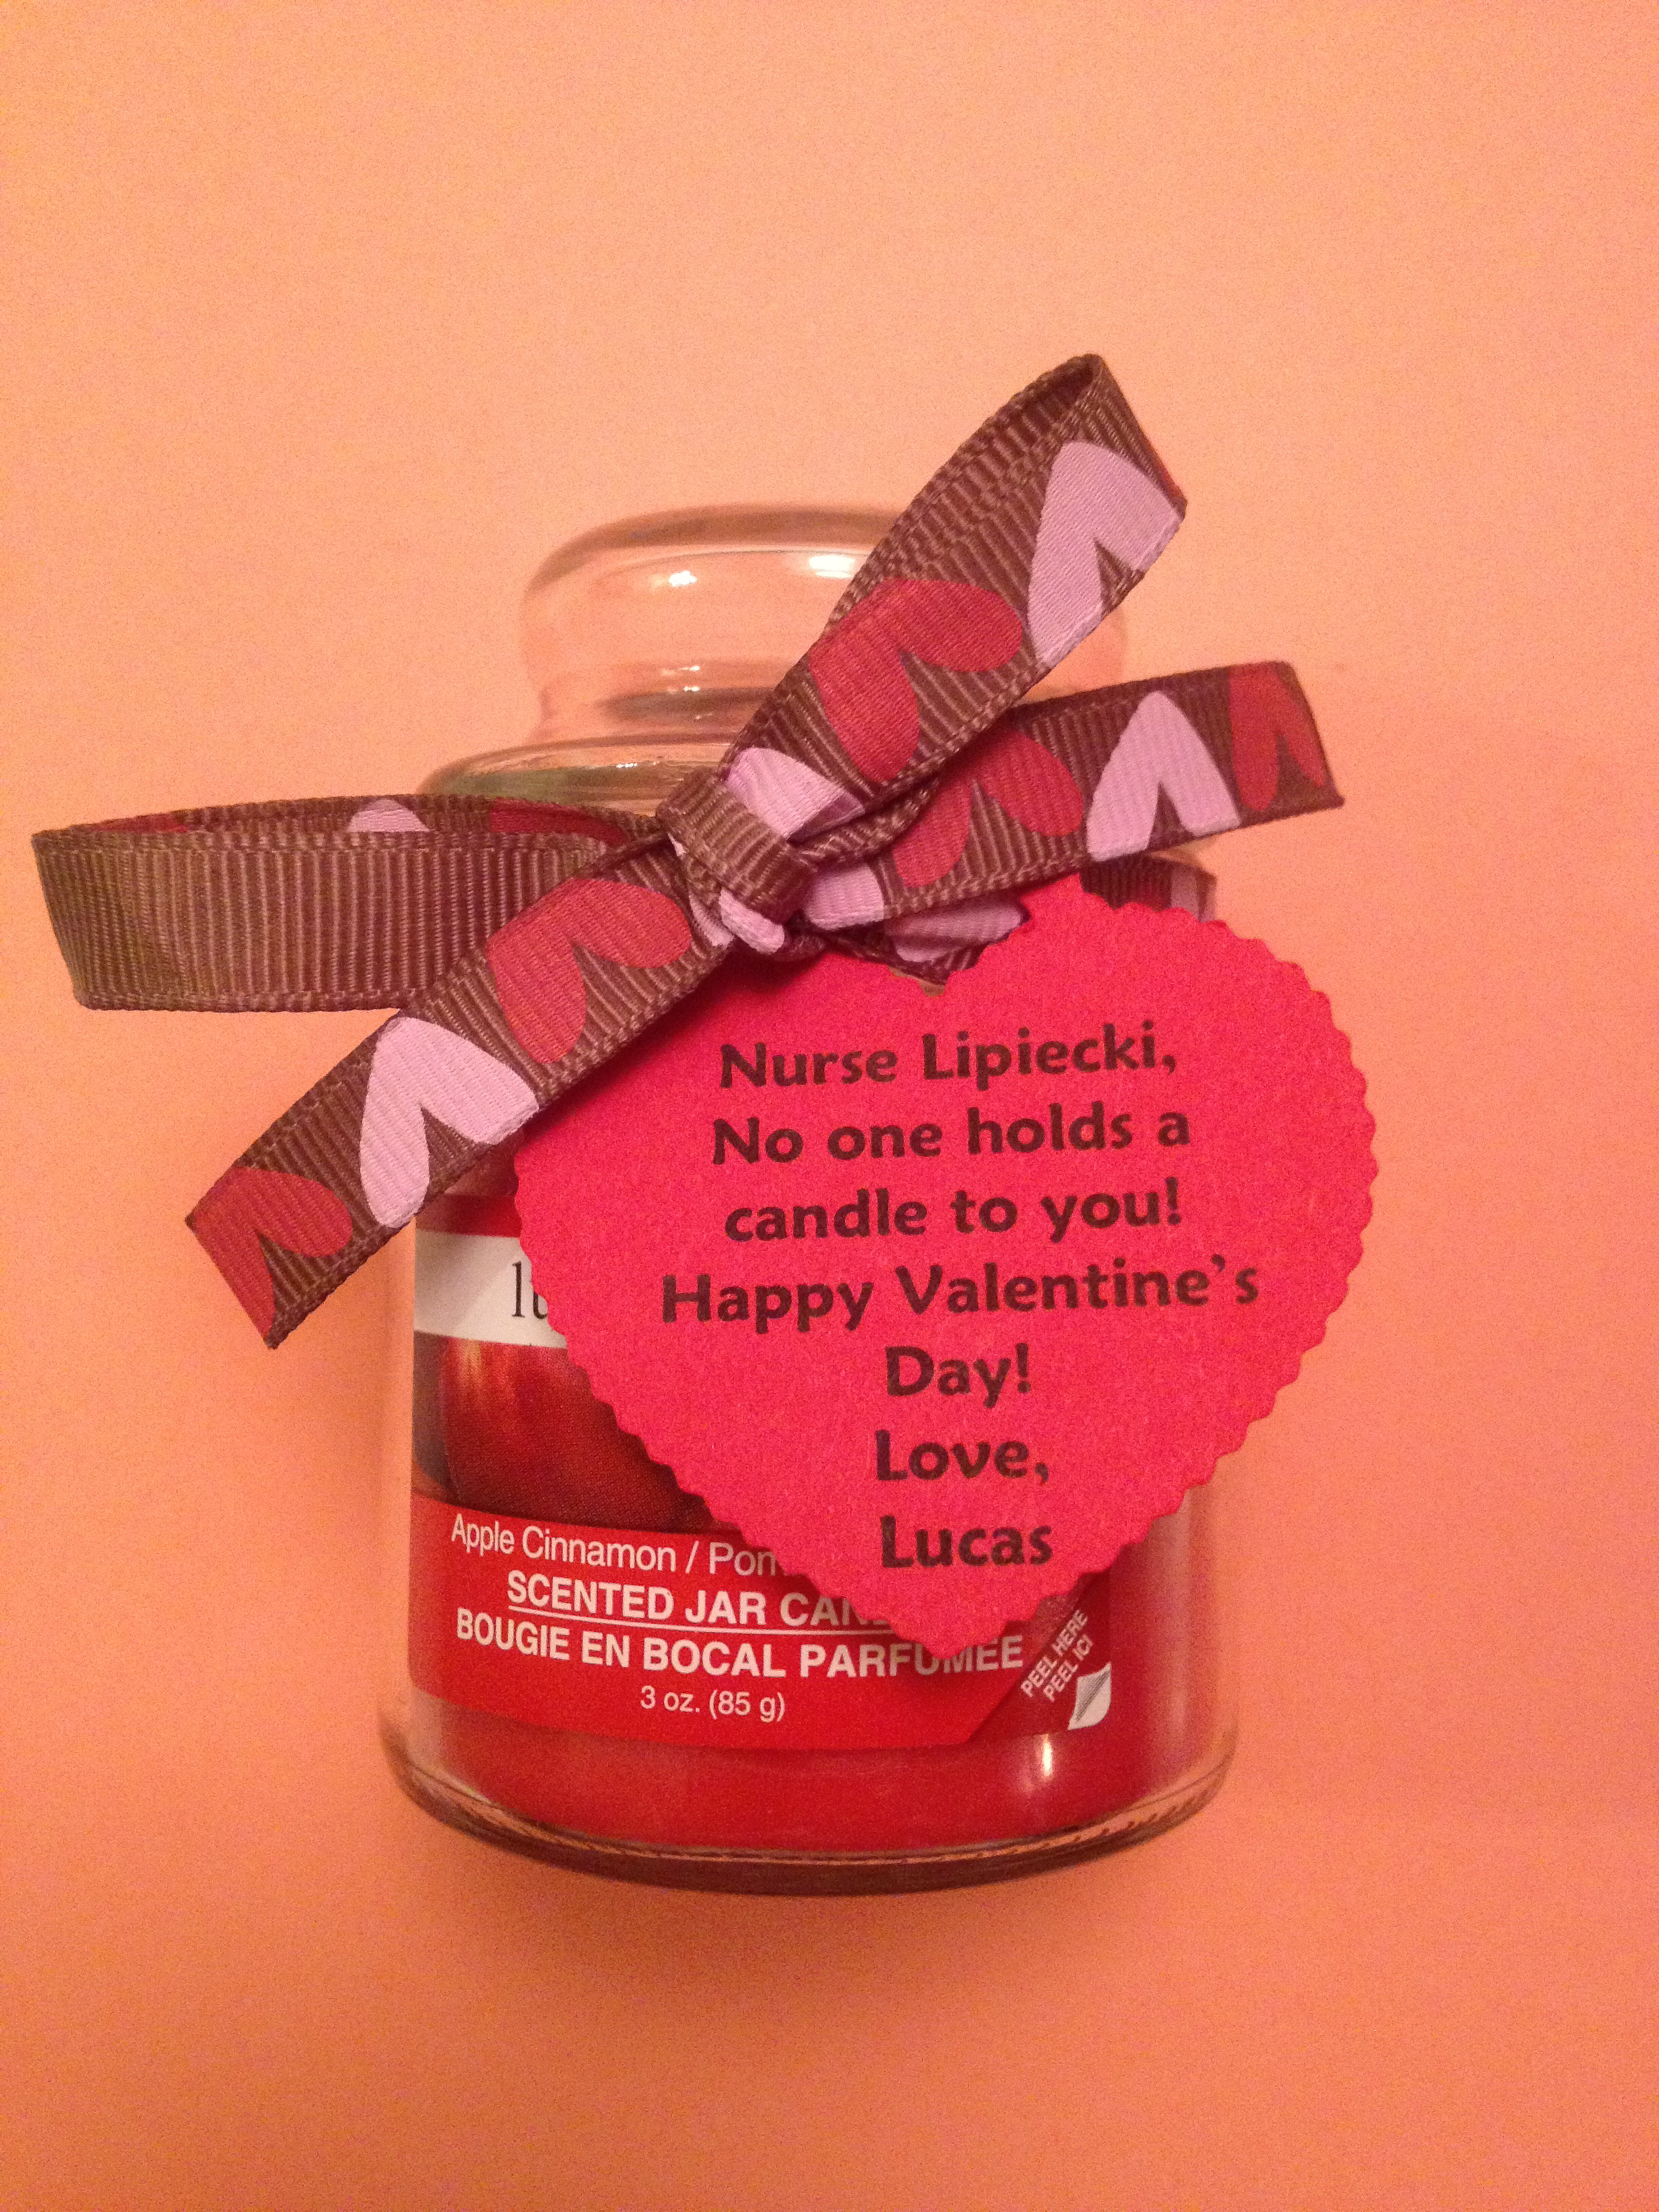 12 easy diy valentines gifts for nurses nursebuff this nurse candle looks especially delicious smelling gift some yummy candles to your fellow nurses and print out heart warming personalized messages to go solutioingenieria Gallery